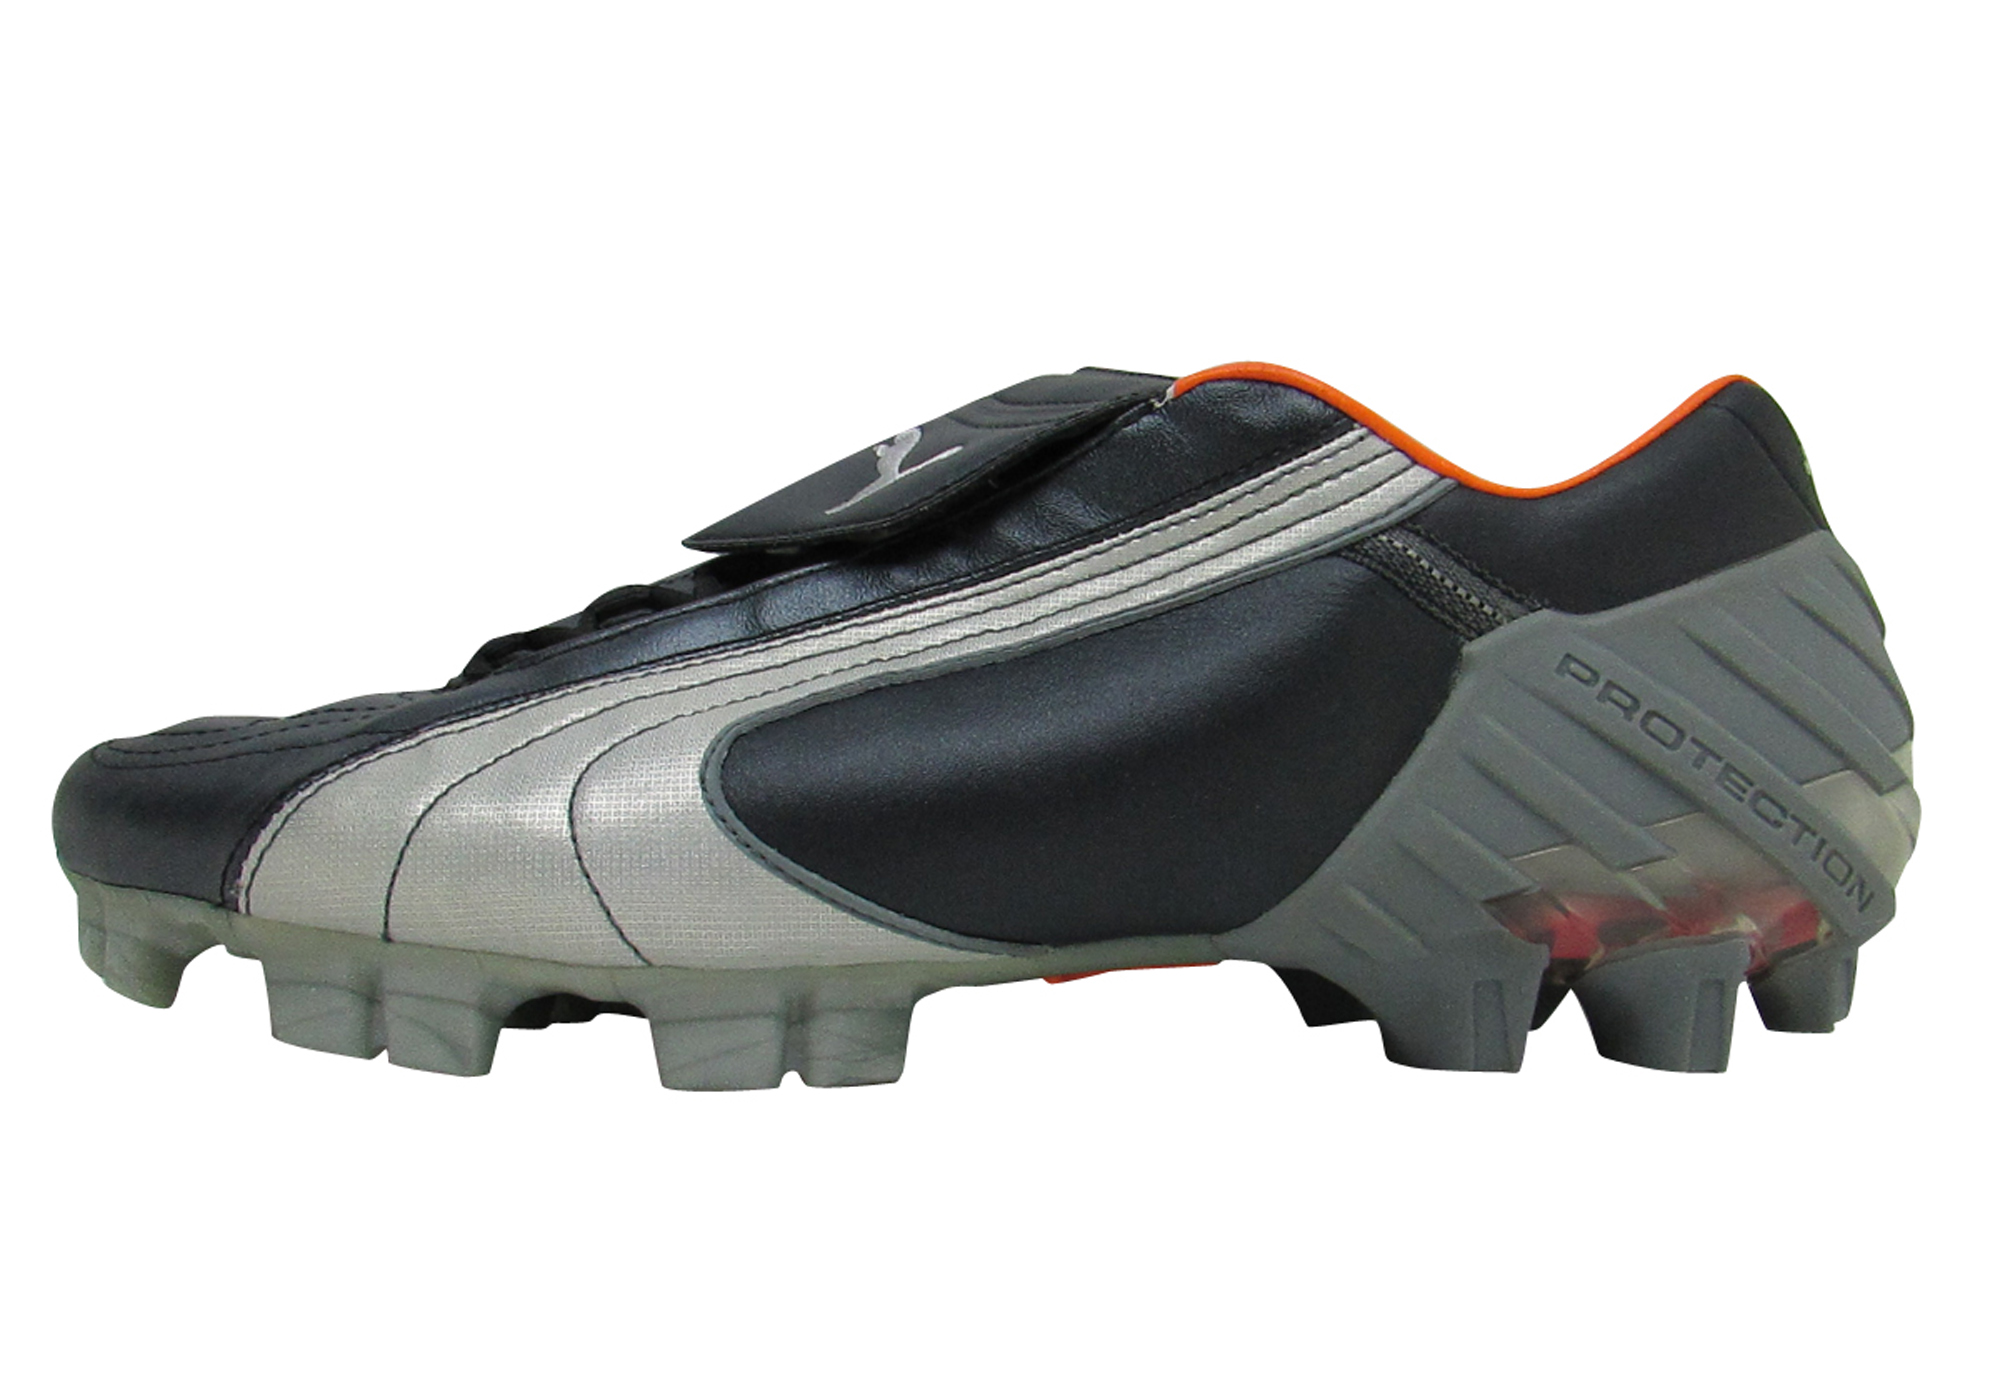 864776a7bc022 Mens Puma V-Kat GCi FG Football Boots Firm Ground Soccer Cleats Boot Leather